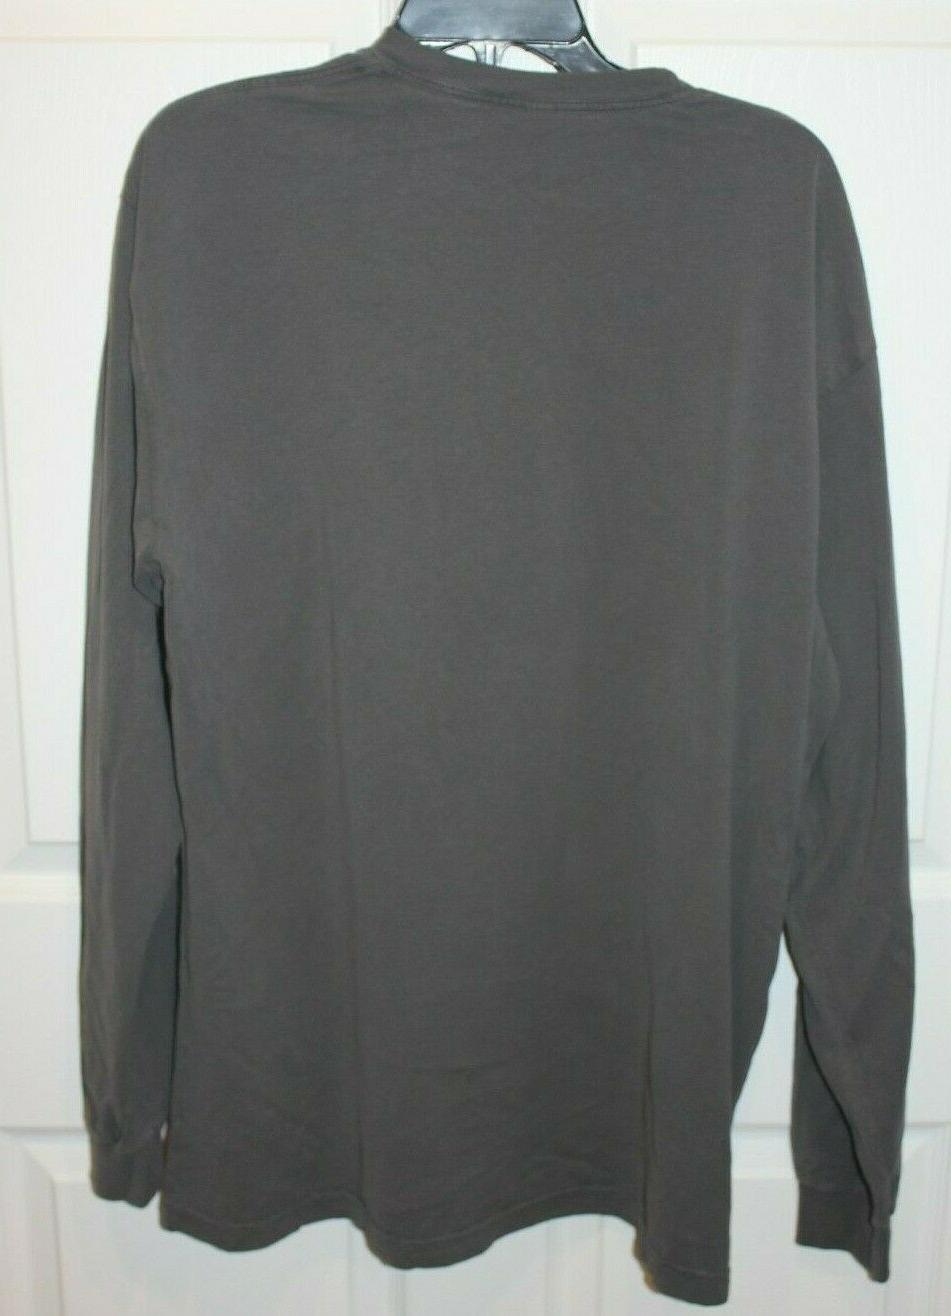 Lot of Apparel Sleeve Cotton Large